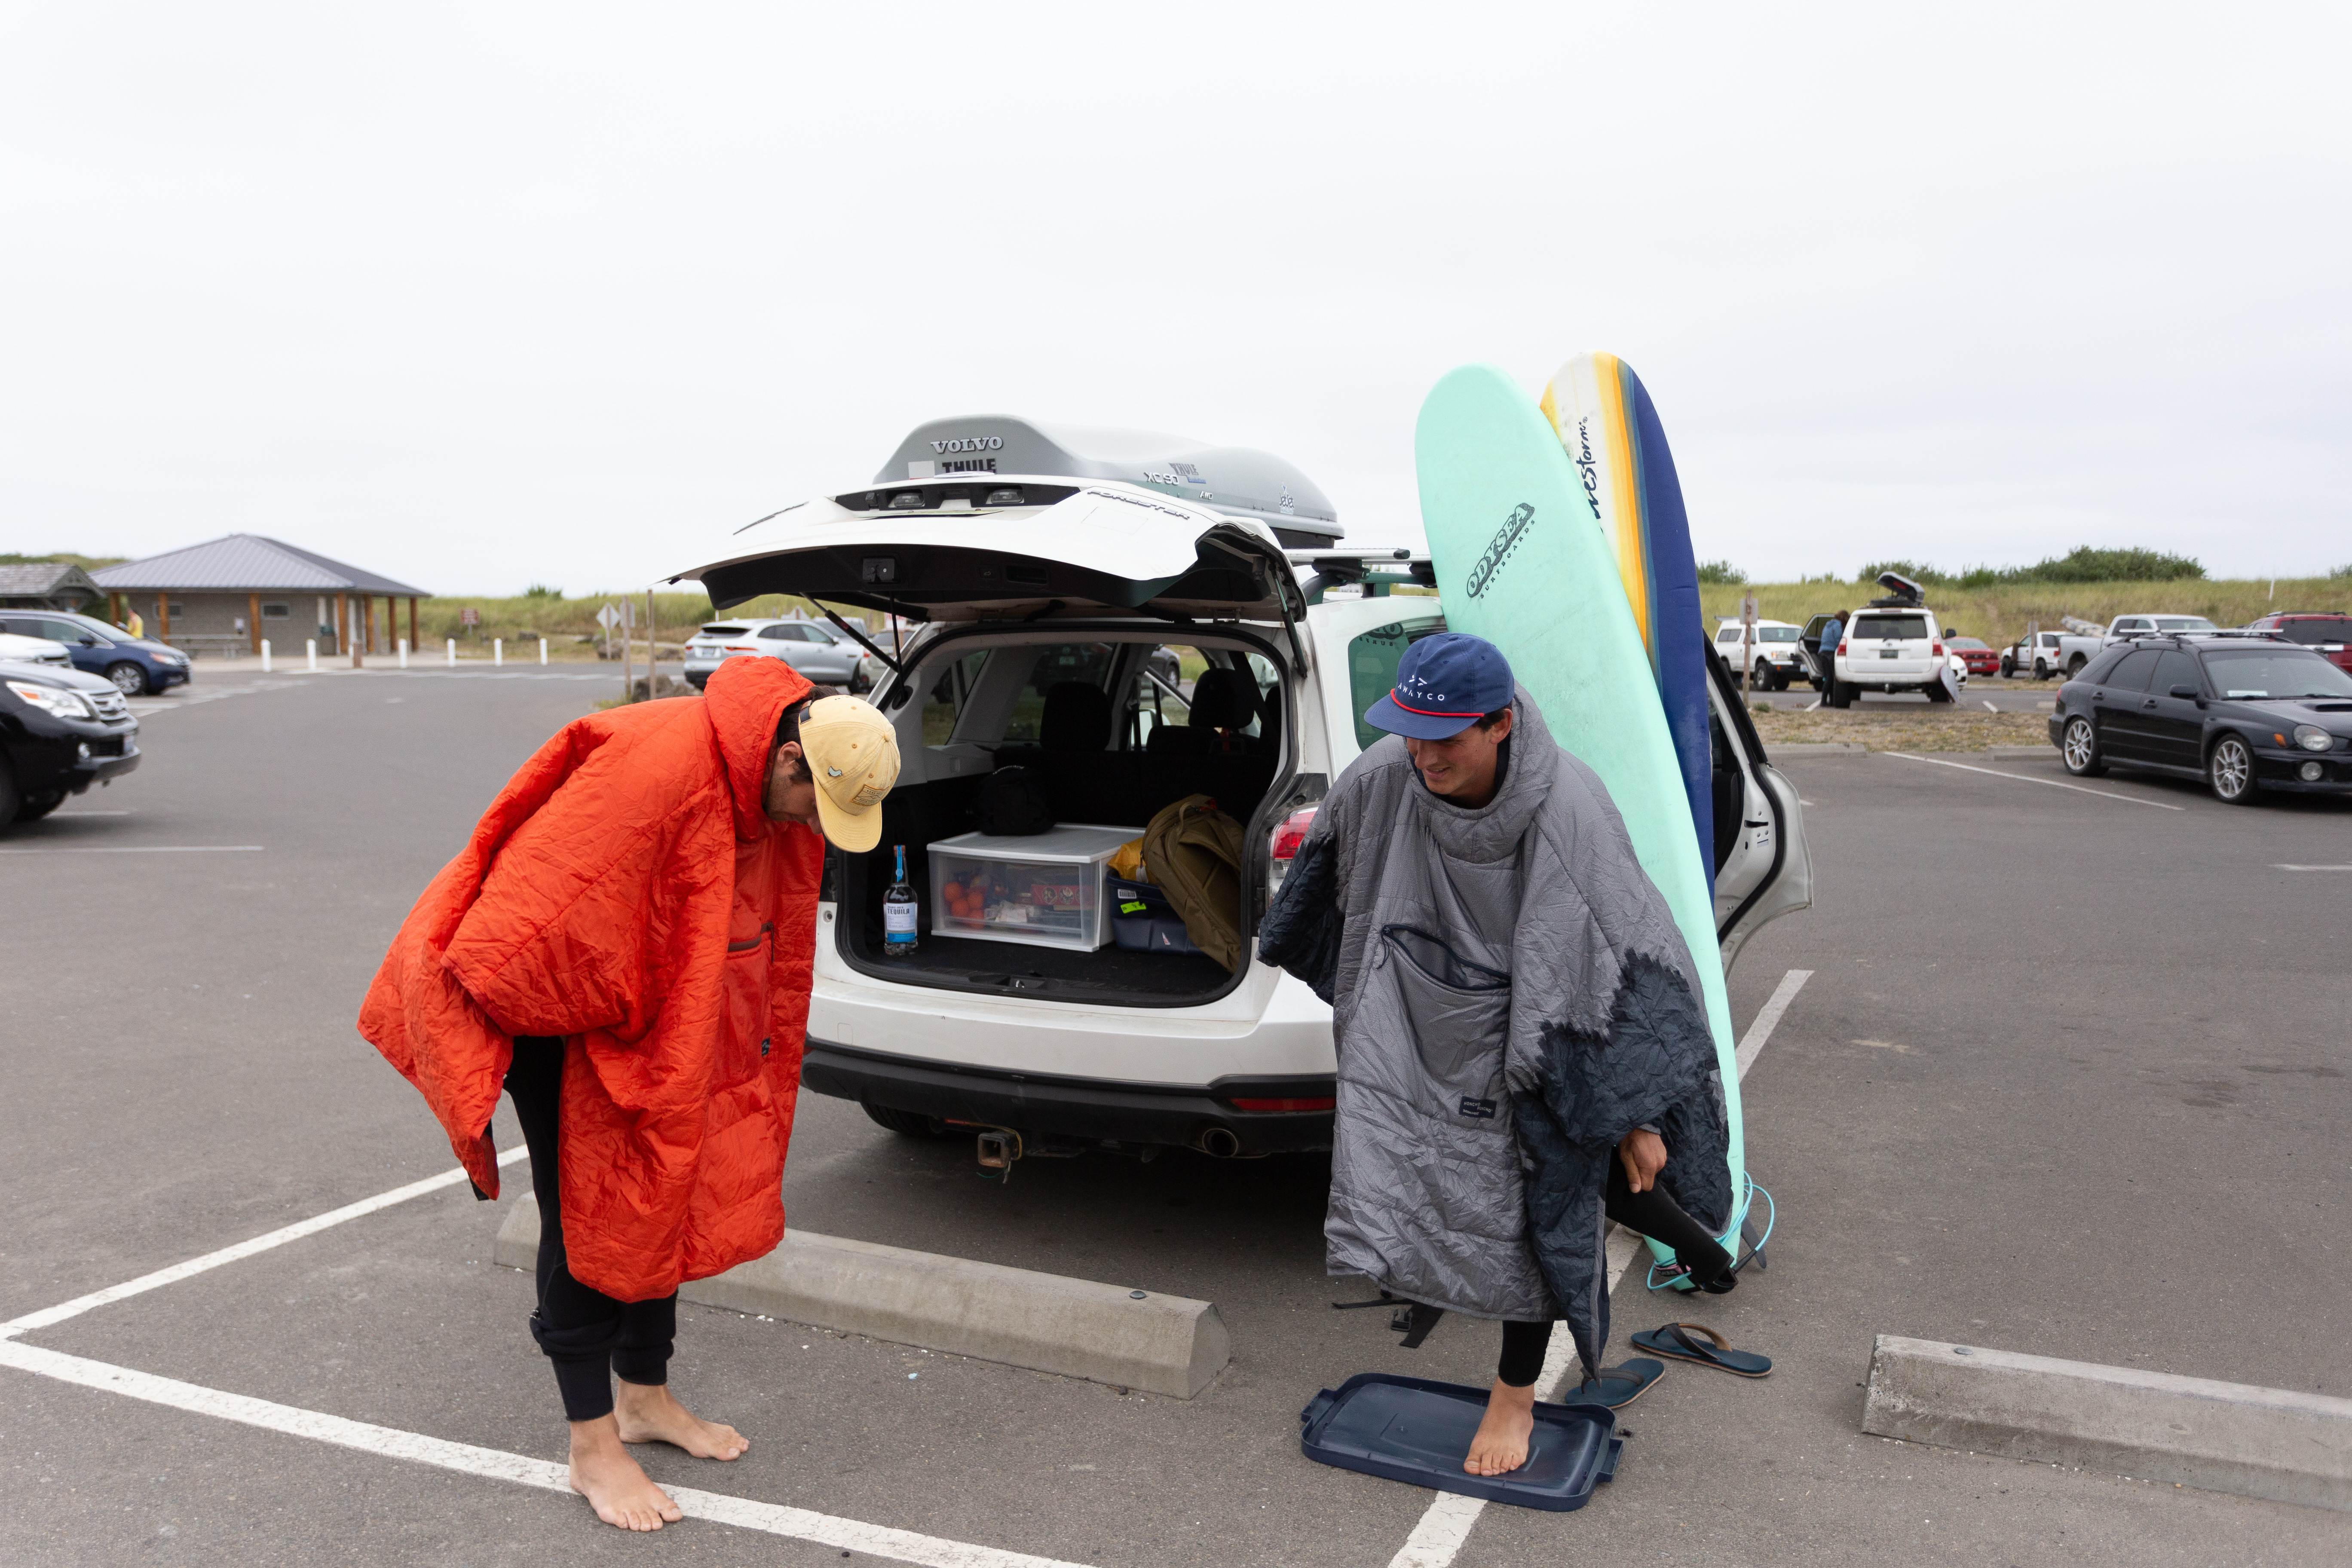 Changing into wetsuit with a honcho poncho